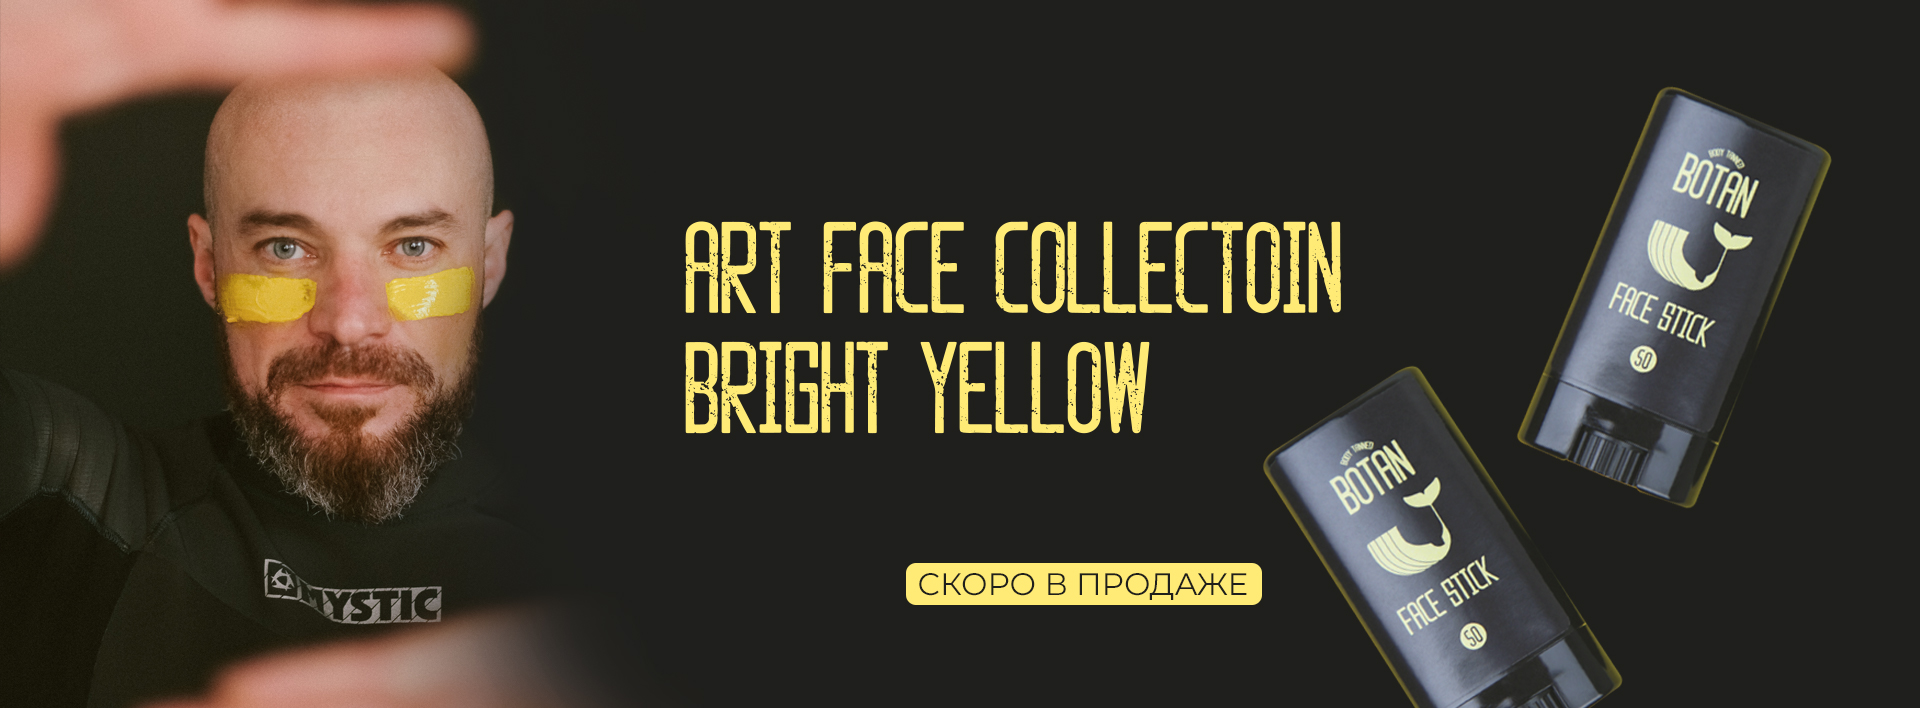 Art Face Collection Bright Yellow